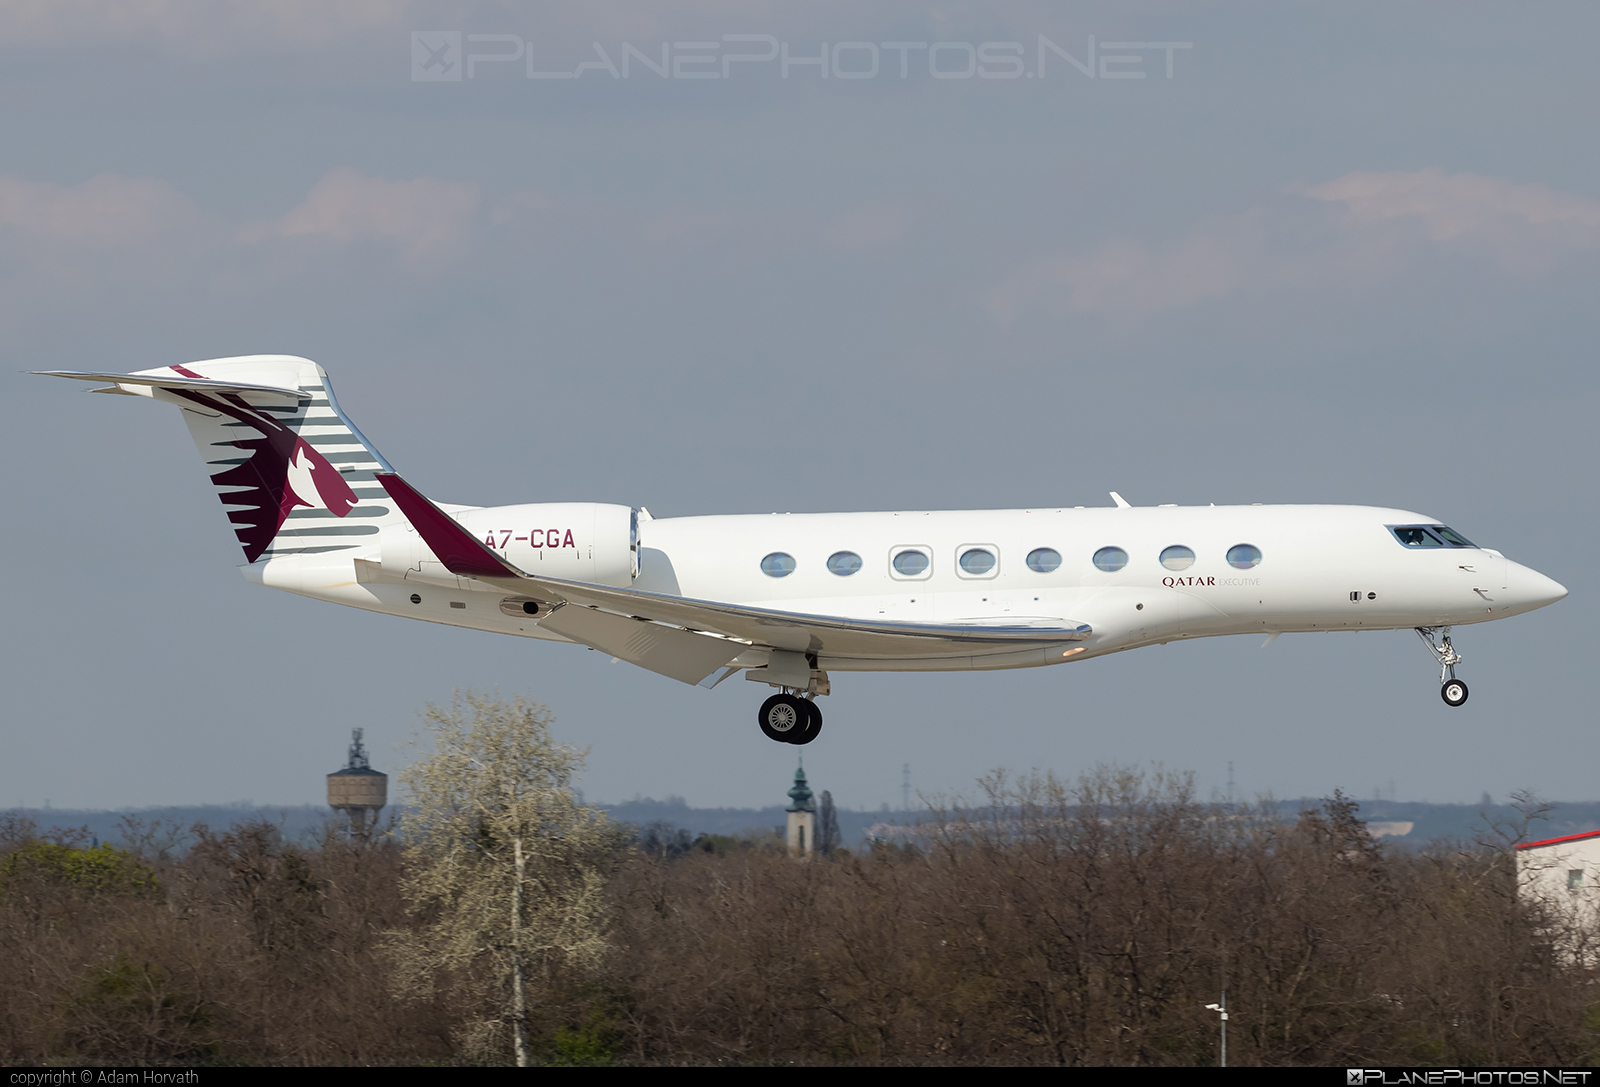 Gulfstream G650ER - A7-CGA operated by Qatar Executive #QatarExecutive #gulfstream #gulfstream650 #gulfstream650er #gulfstreamg650 #gulfstreamgvi